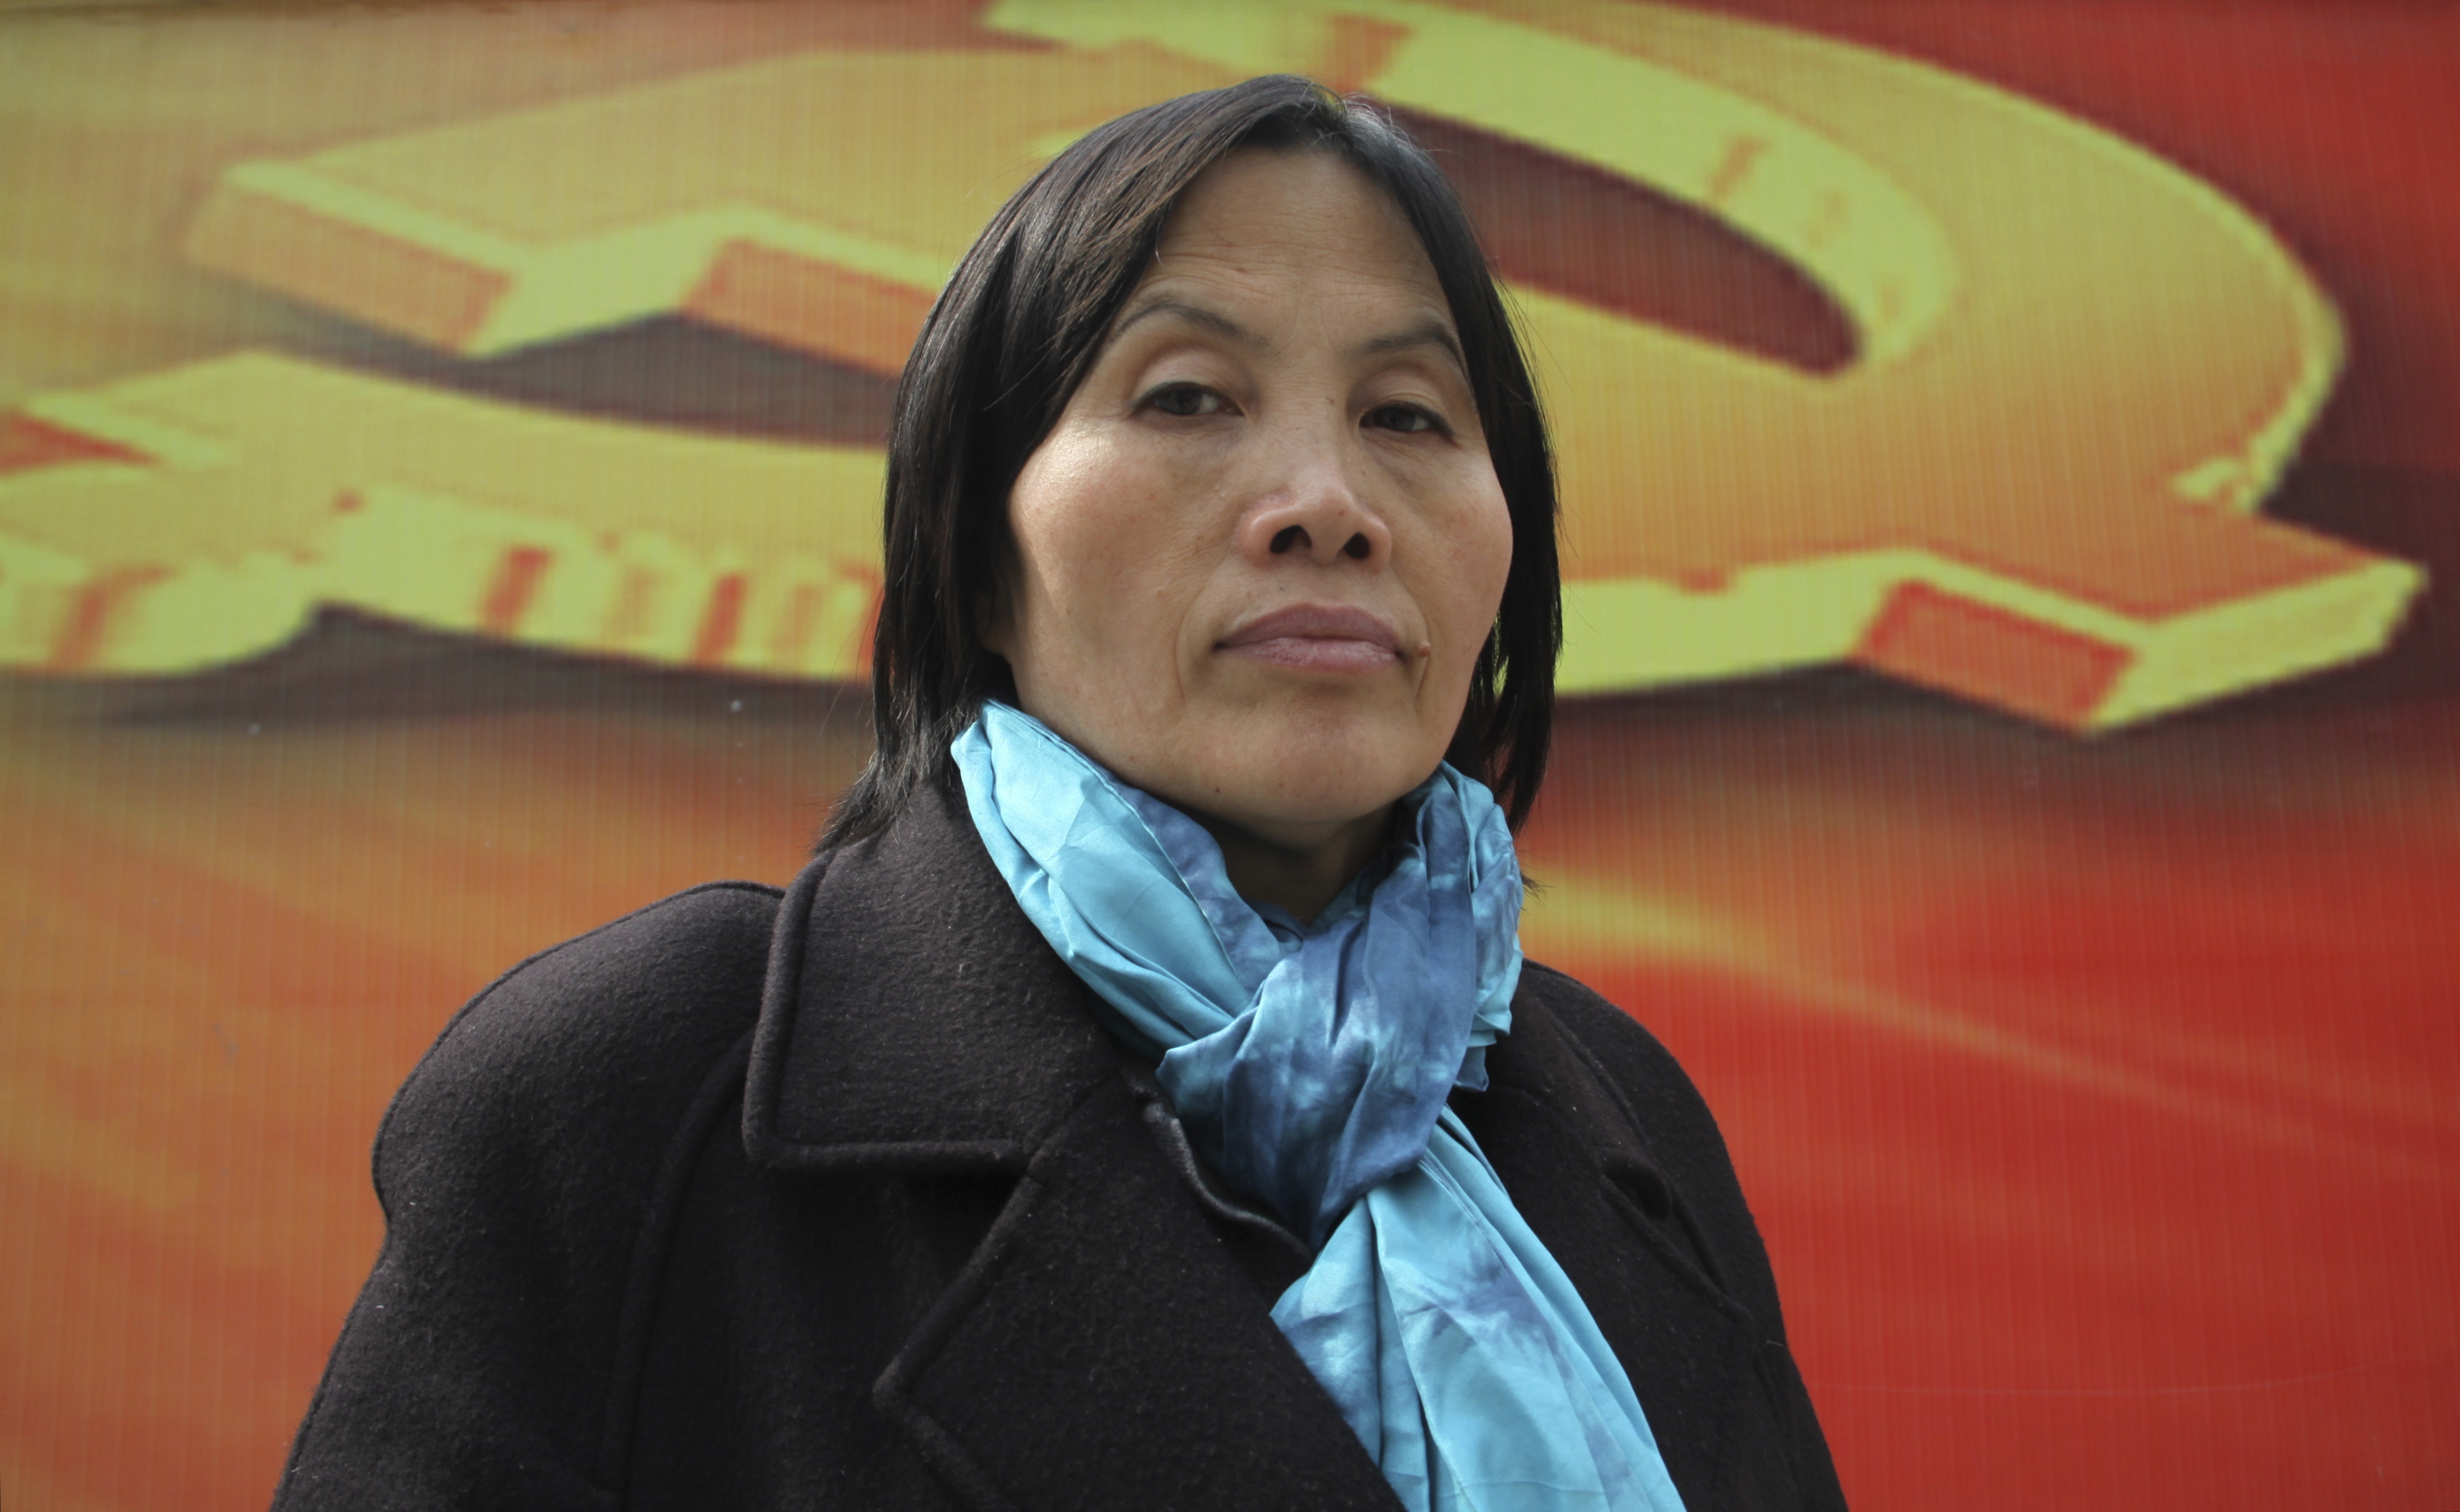 Cao Shunli, human rights activist. (Photo courtesy: AP)